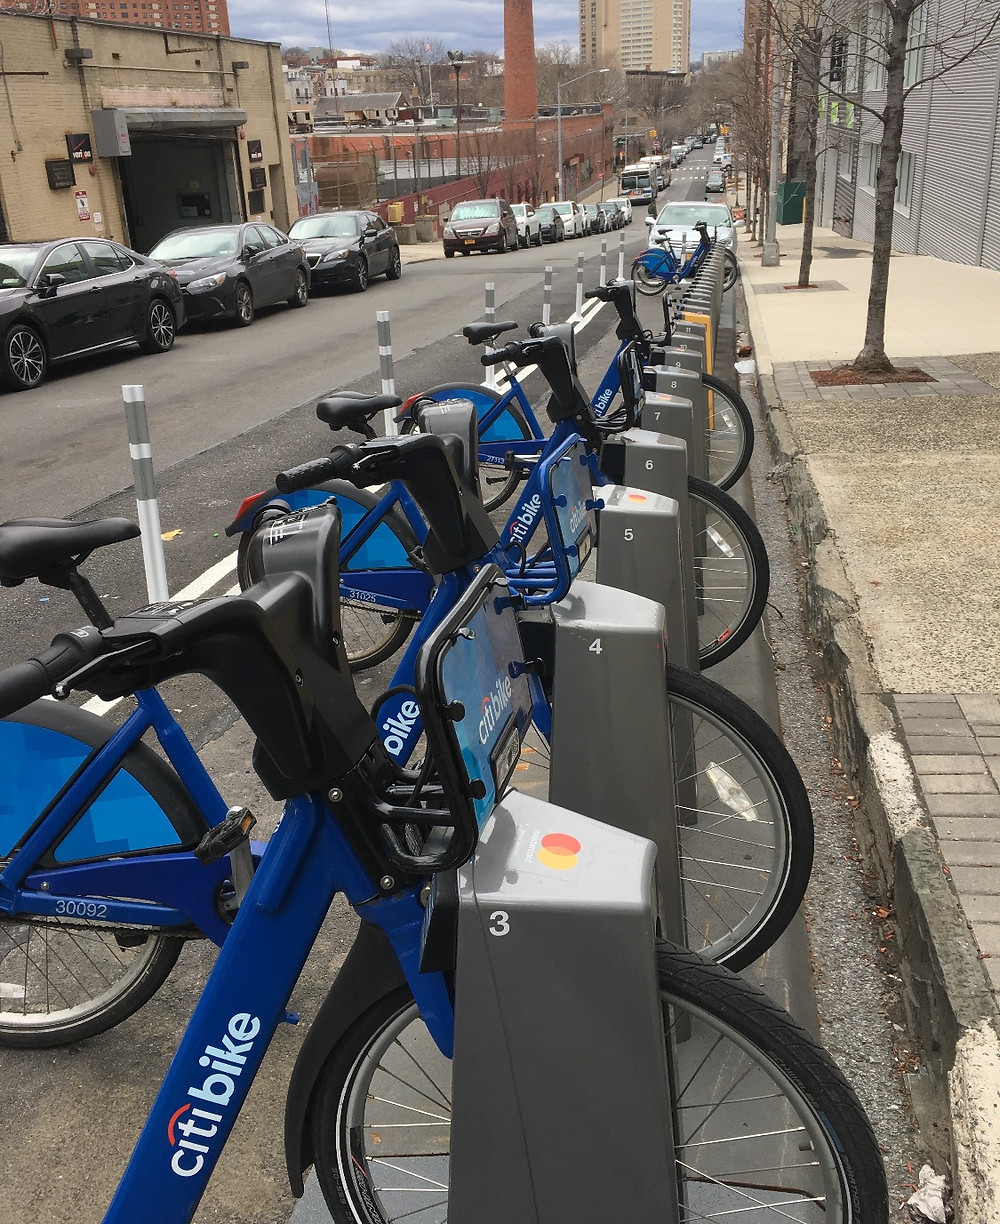 A Citi Bike Station in West Harlem